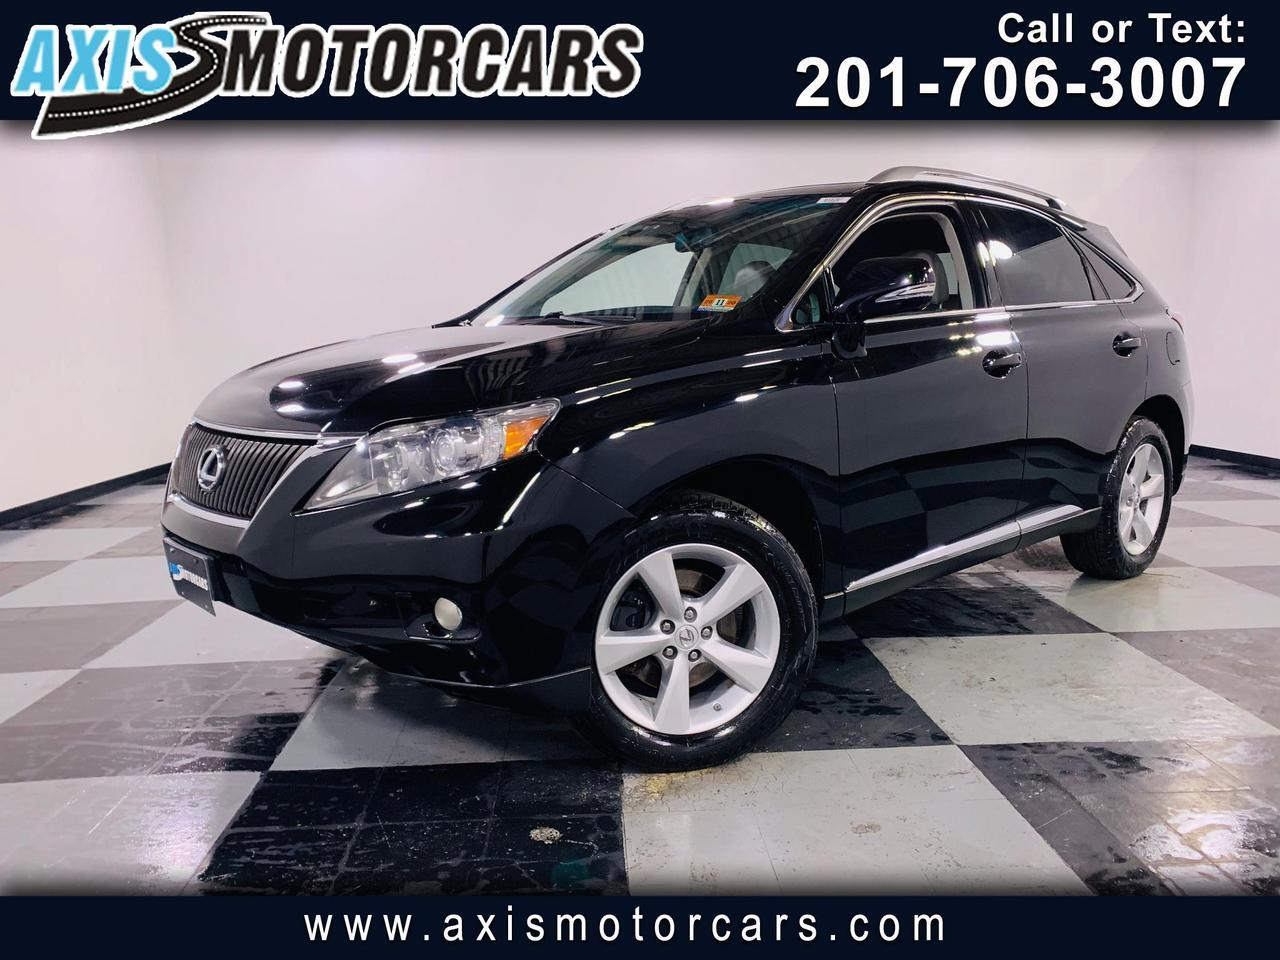 2010 Lexus RX 350 AWD 4dr Jersey City NJ